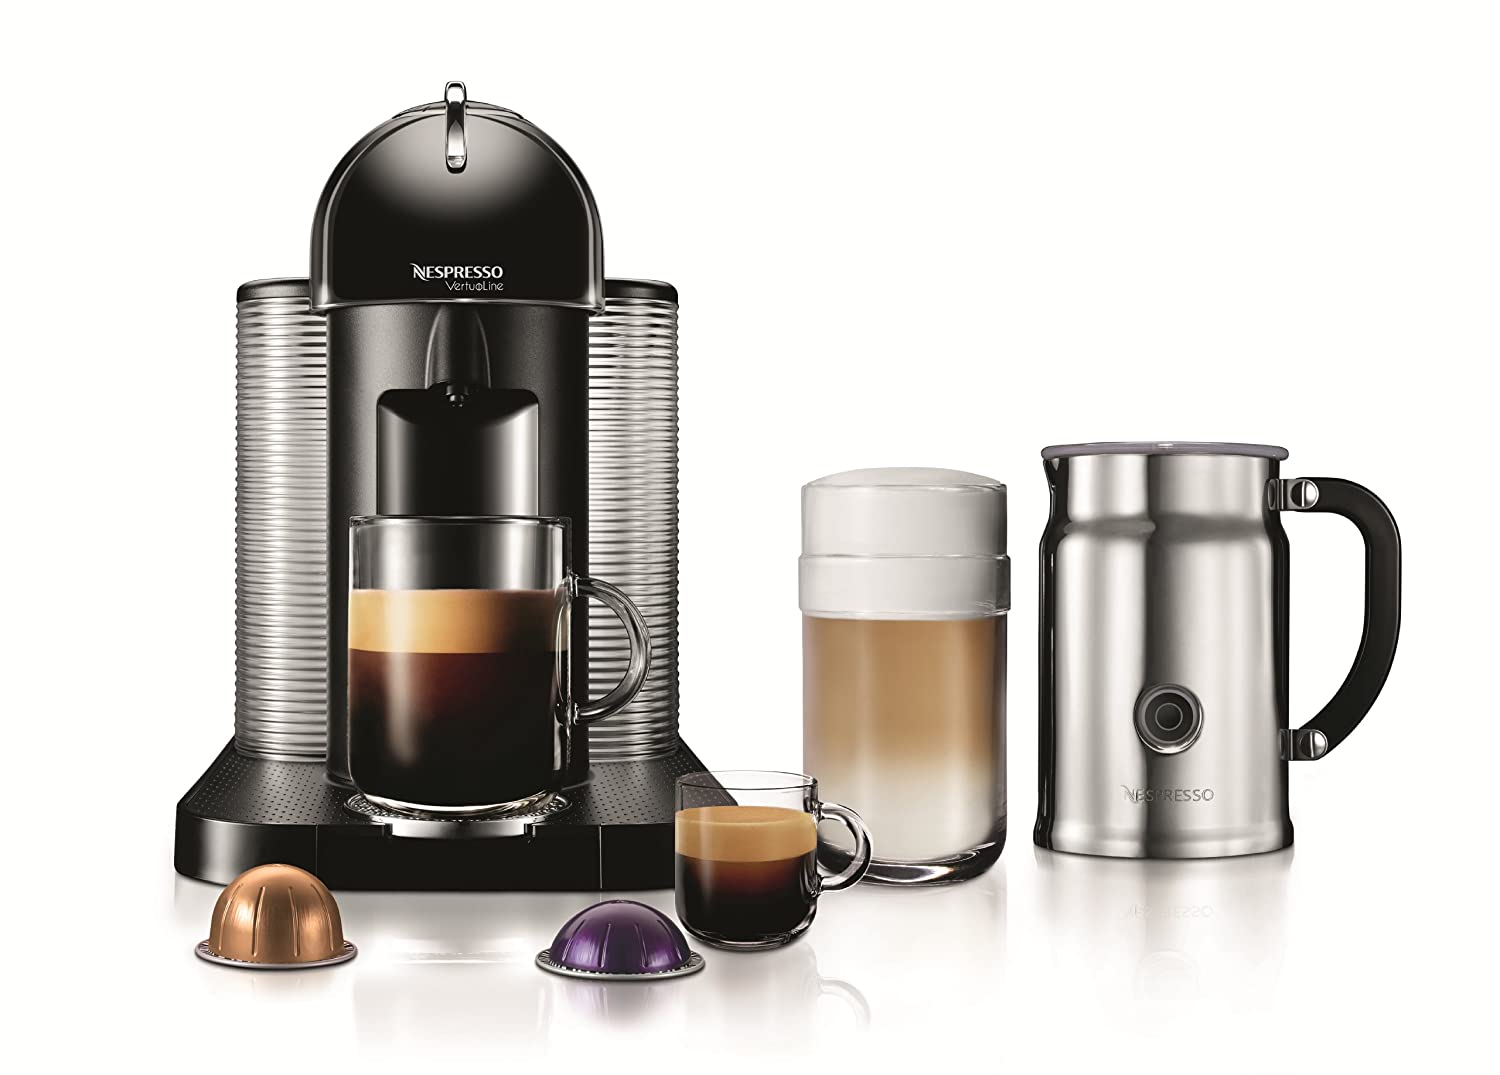 Nespresso VertuoLine Coffee and Espresso Maker with Aeroccino Plus Milk Frother, Black Discontinued Model